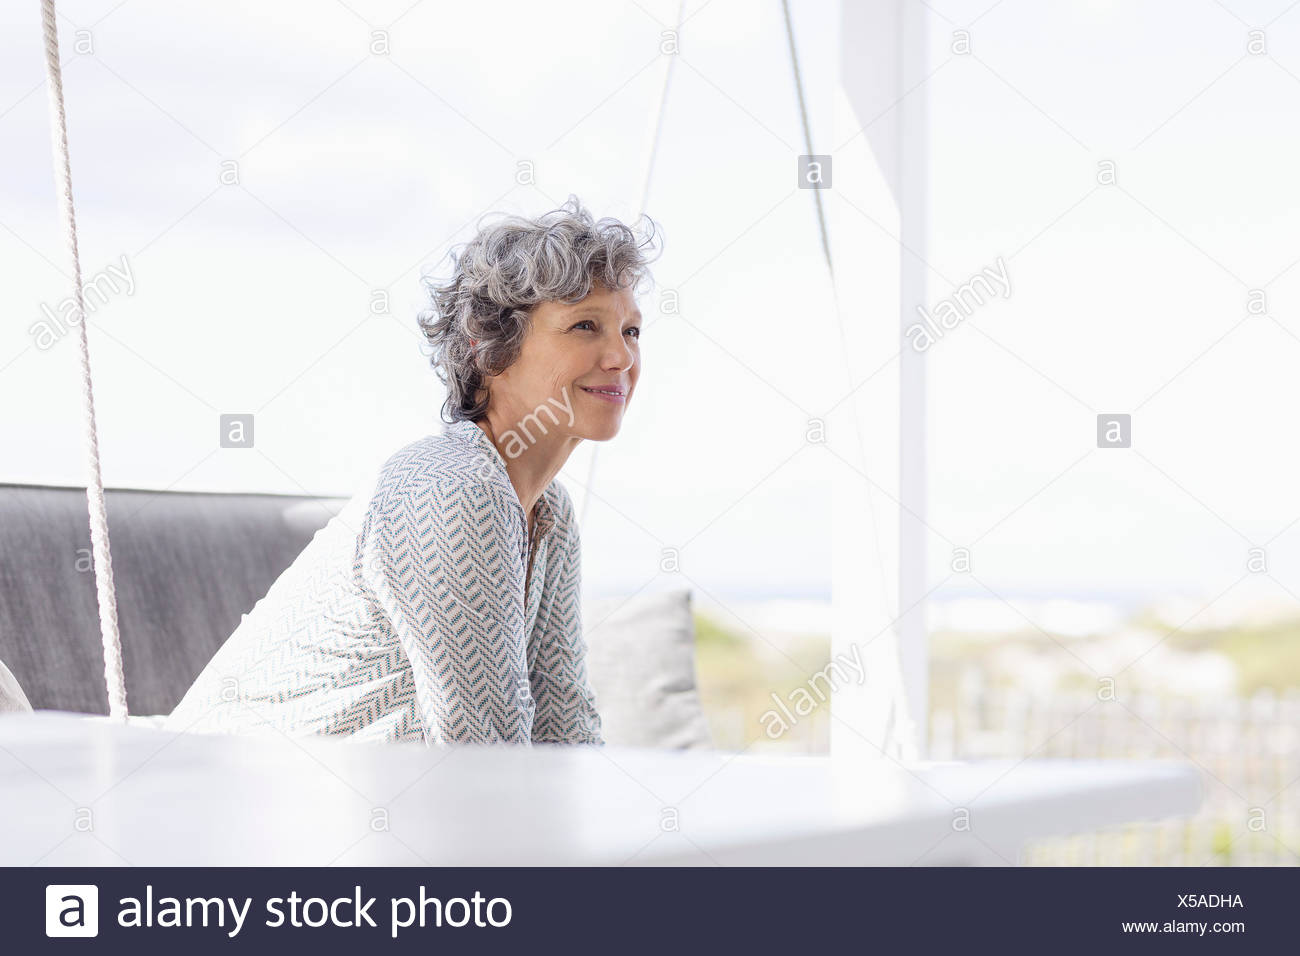 Woman sitting on a swing and day dreaming - Stock Image